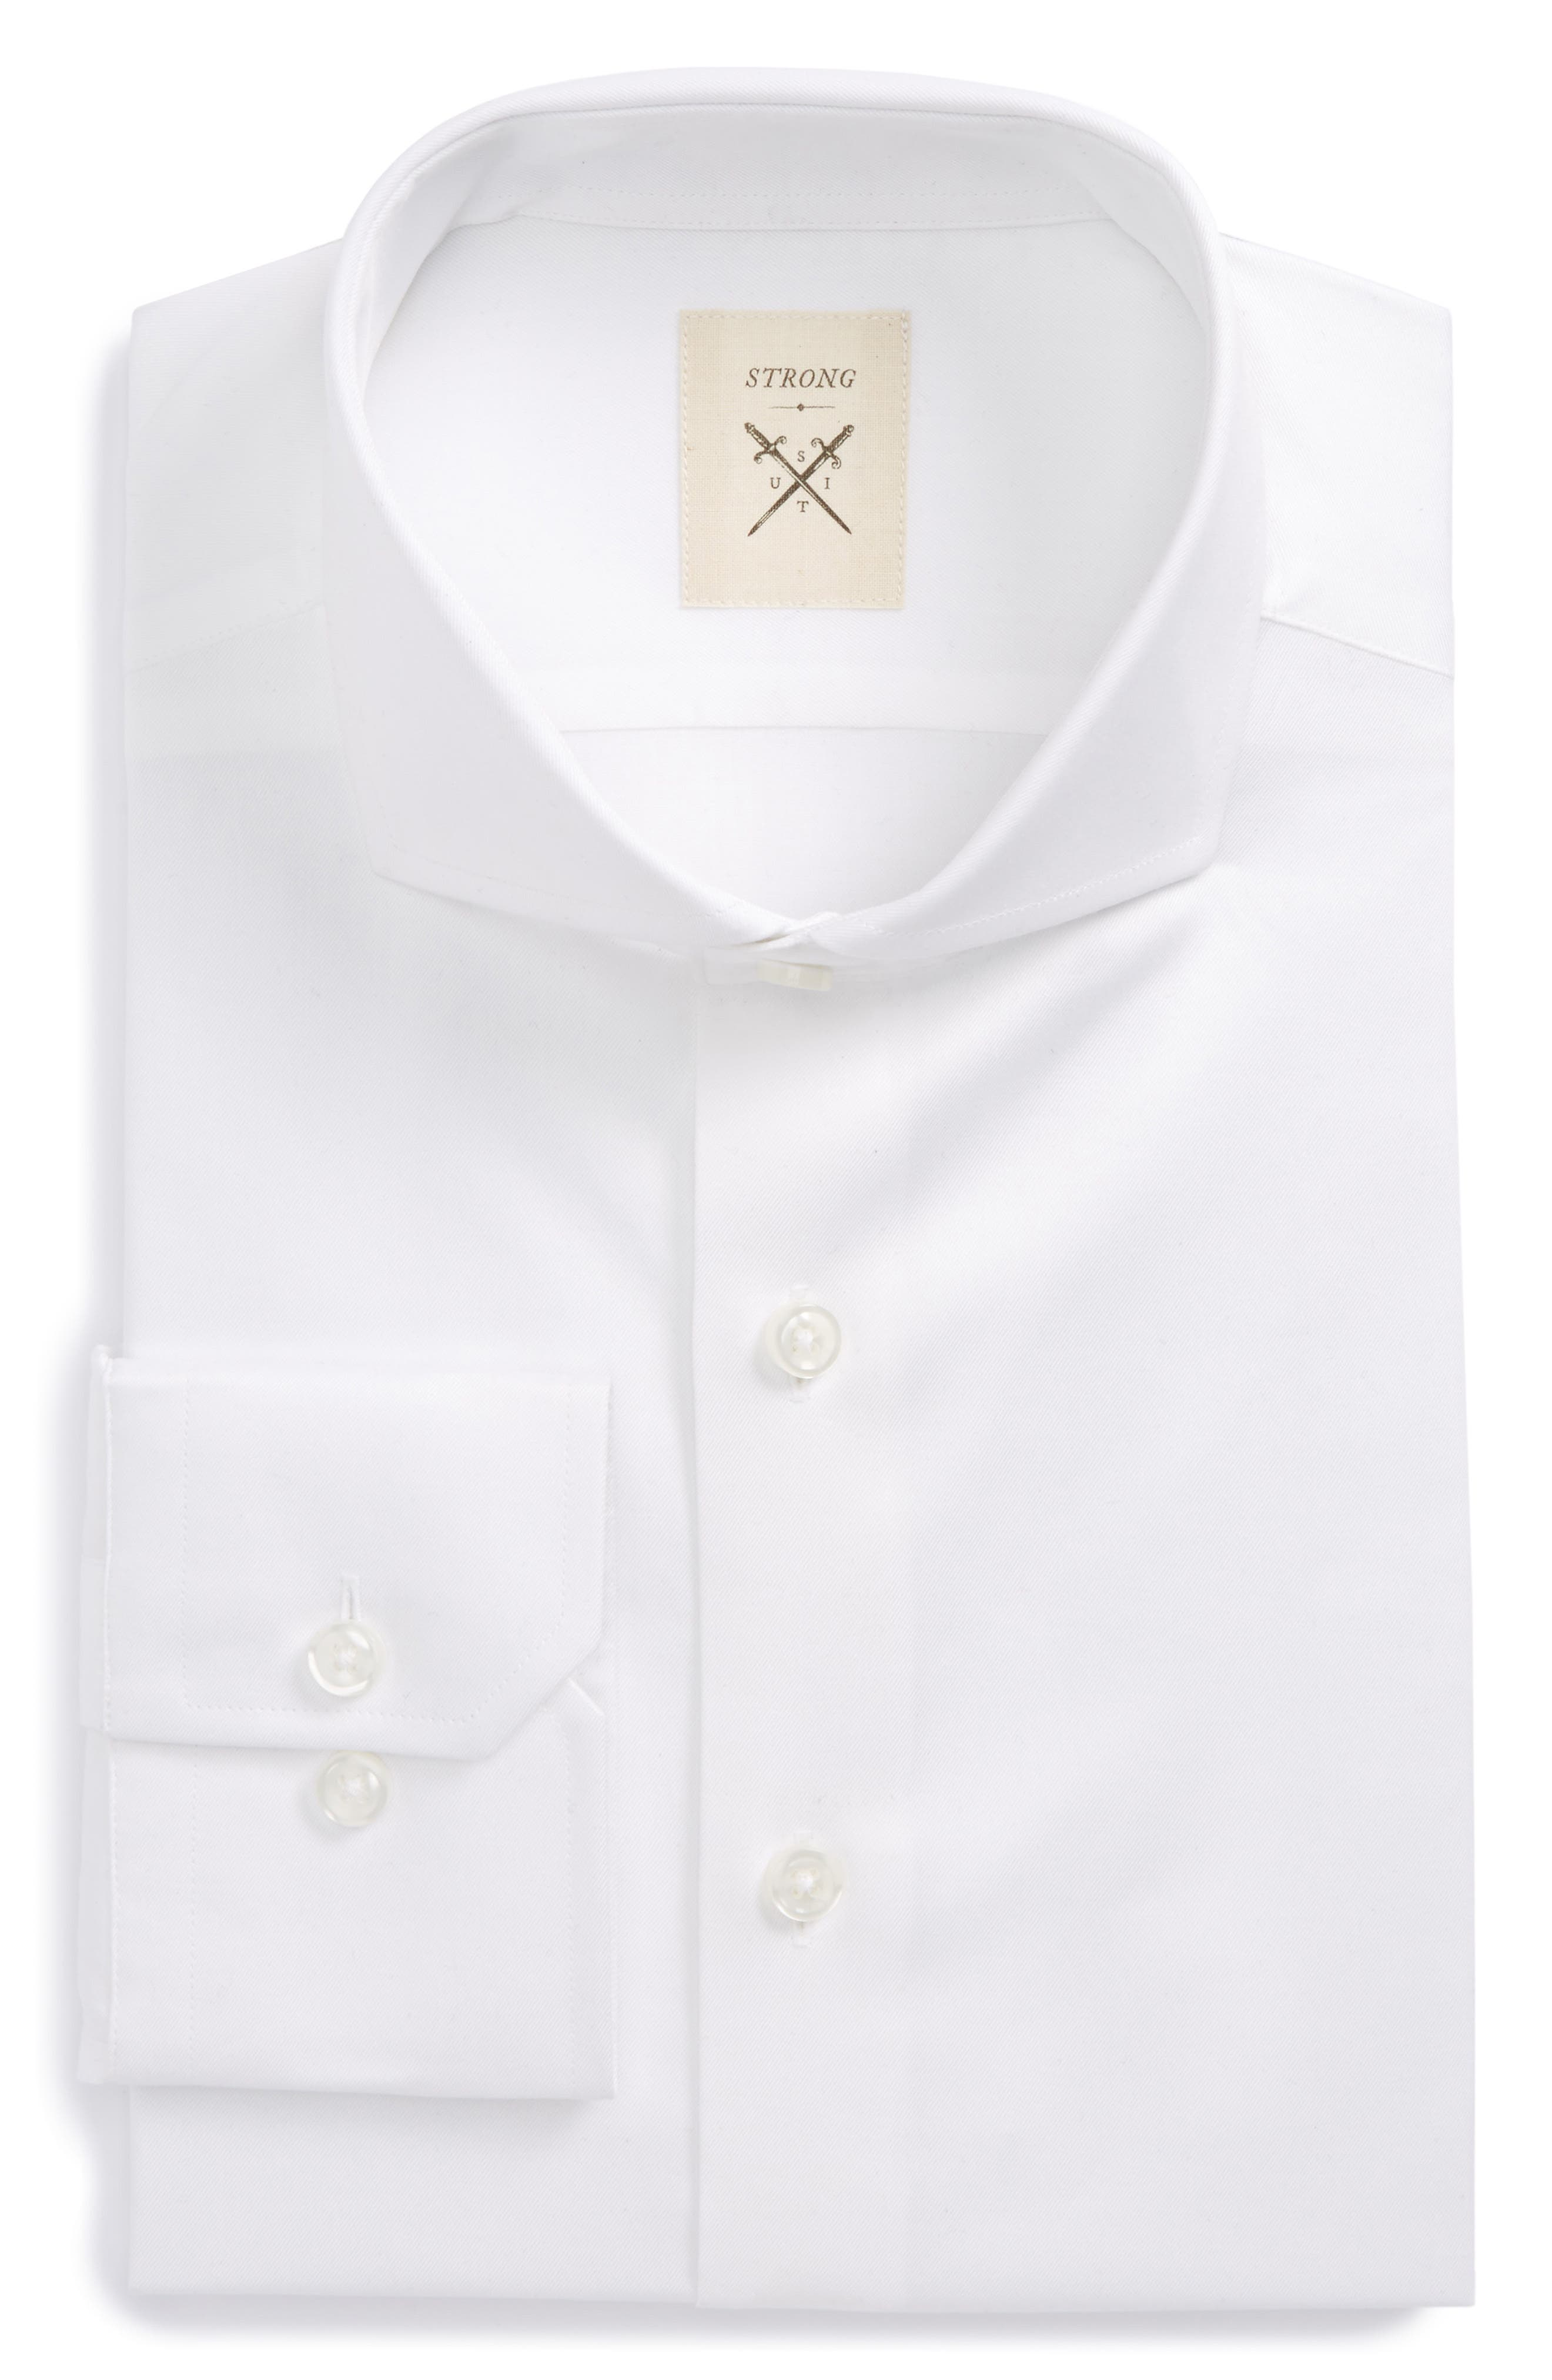 Trim Fit Solid Twill Dress Shirt,                         Main,                         color, White